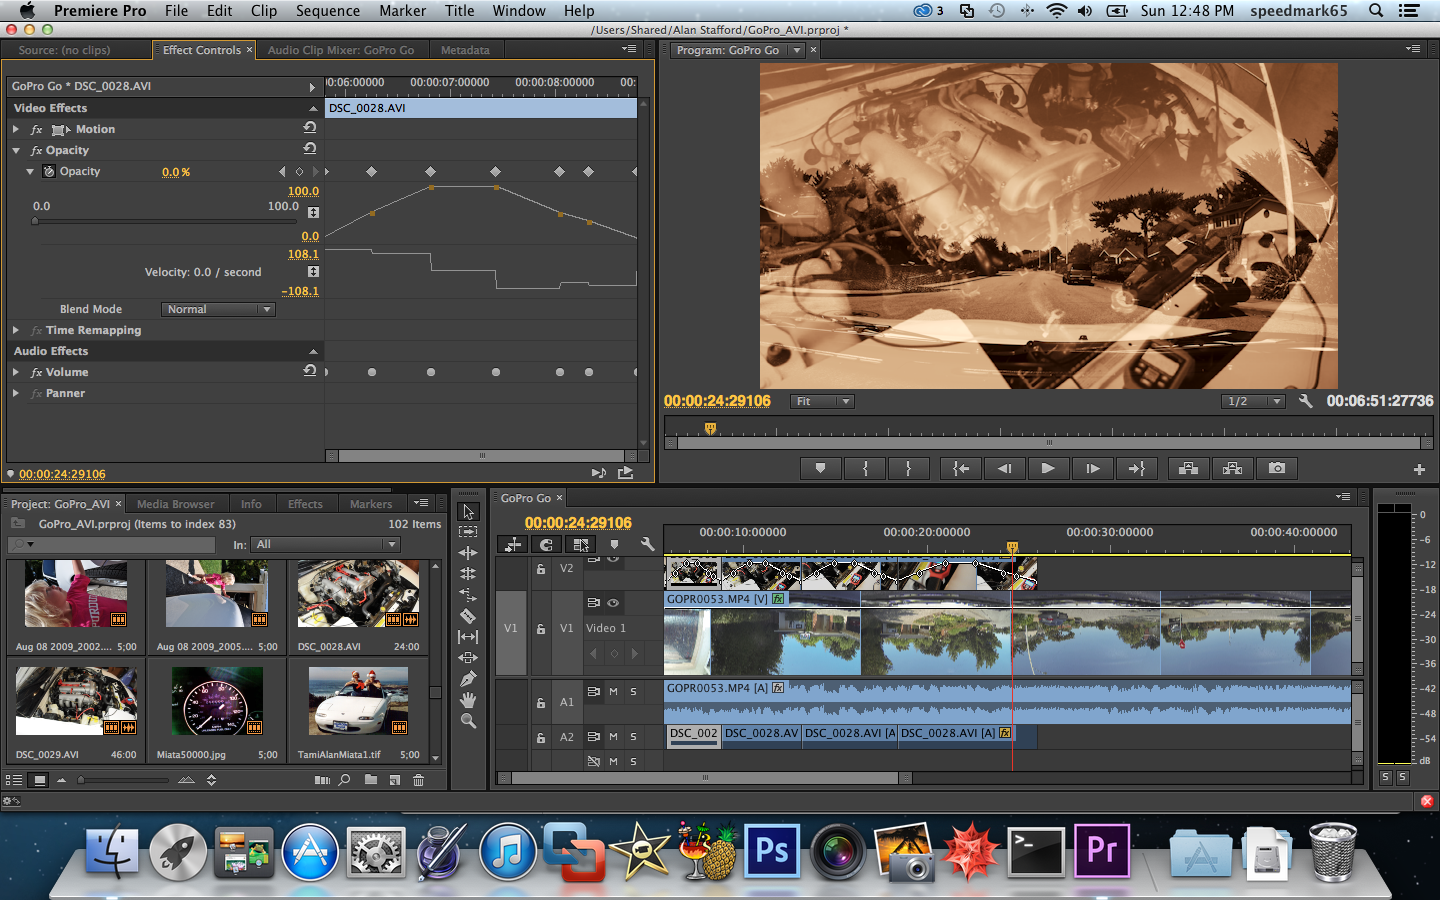 Adobe premiere pro cc 7 0 0 342 final multilanguage lostworld